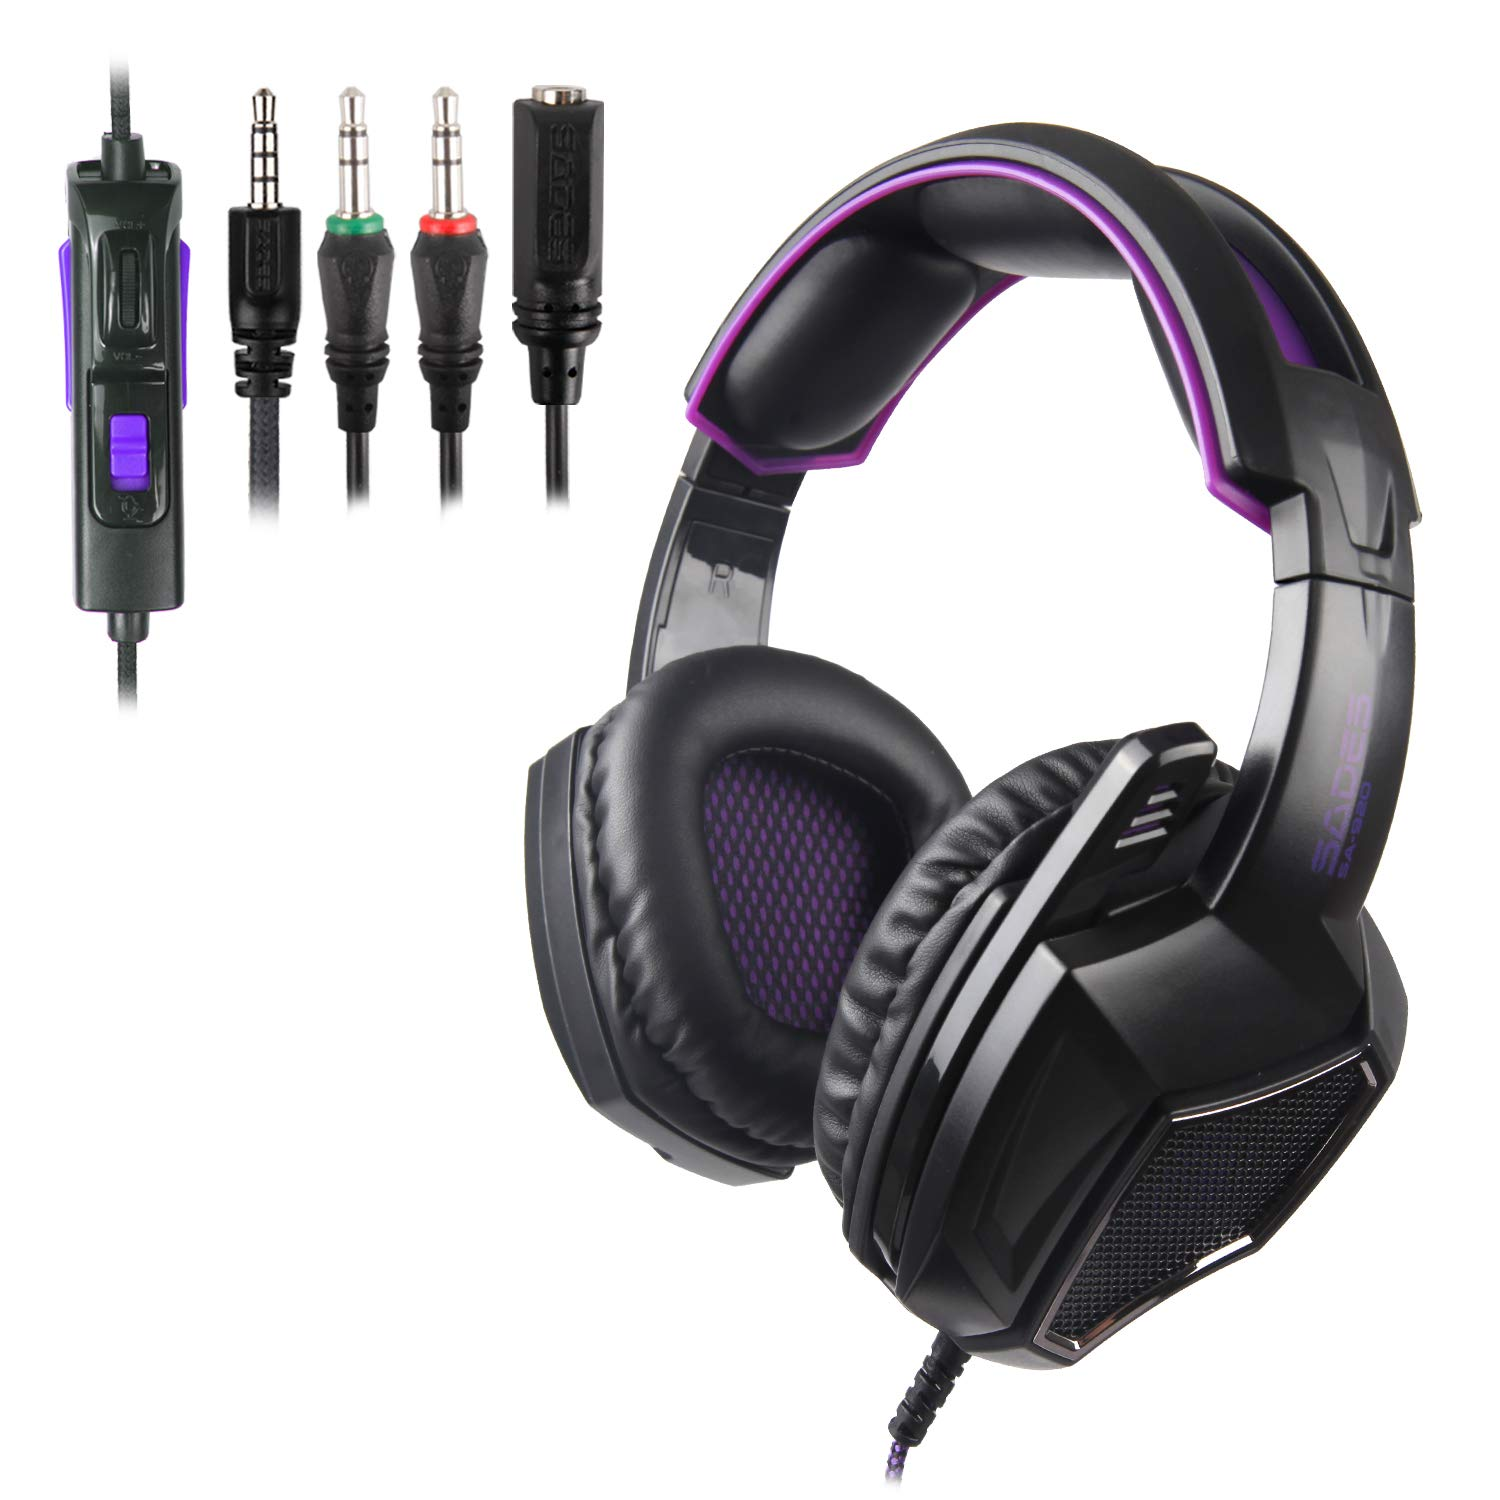 Black White PS4 Xbox One Gaming Headsets,Sades SA920 3.5mm Wired Over Ear Stereo Gaming Headphones with Microphone for PC iOS Computer Gamers Smart Phones Mobiles